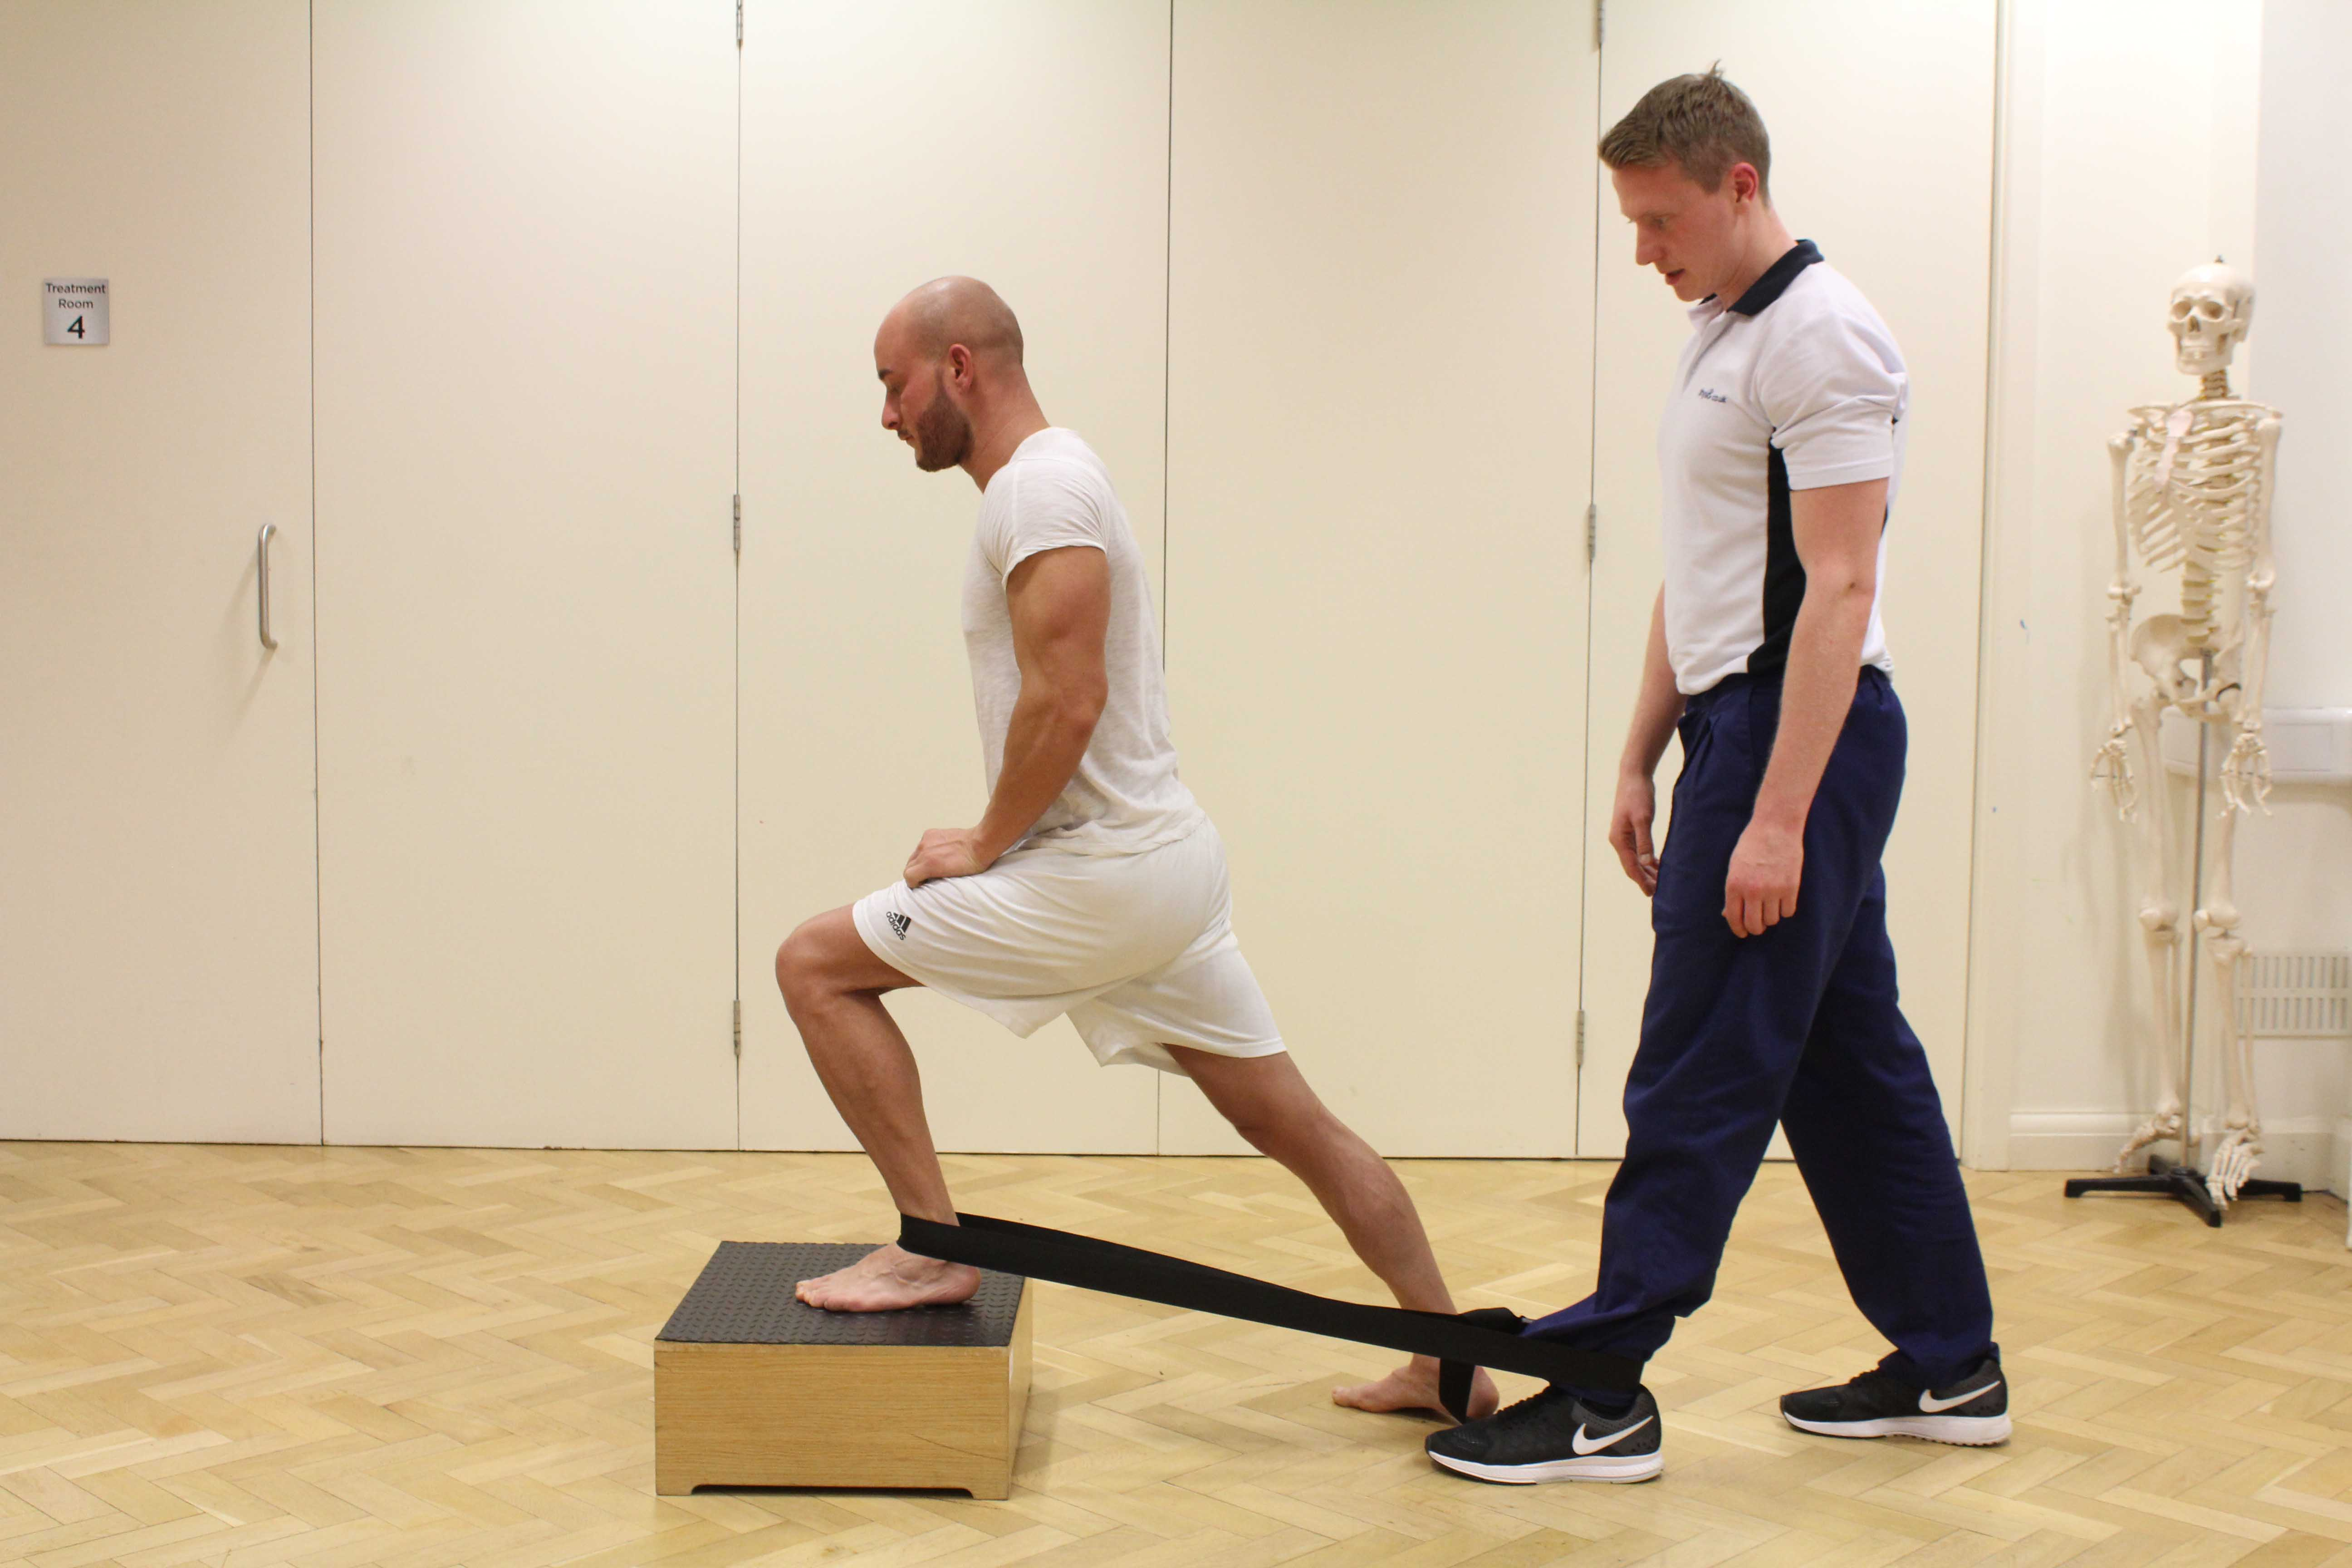 Mobilisation exercise for anterior impingement of the ankle